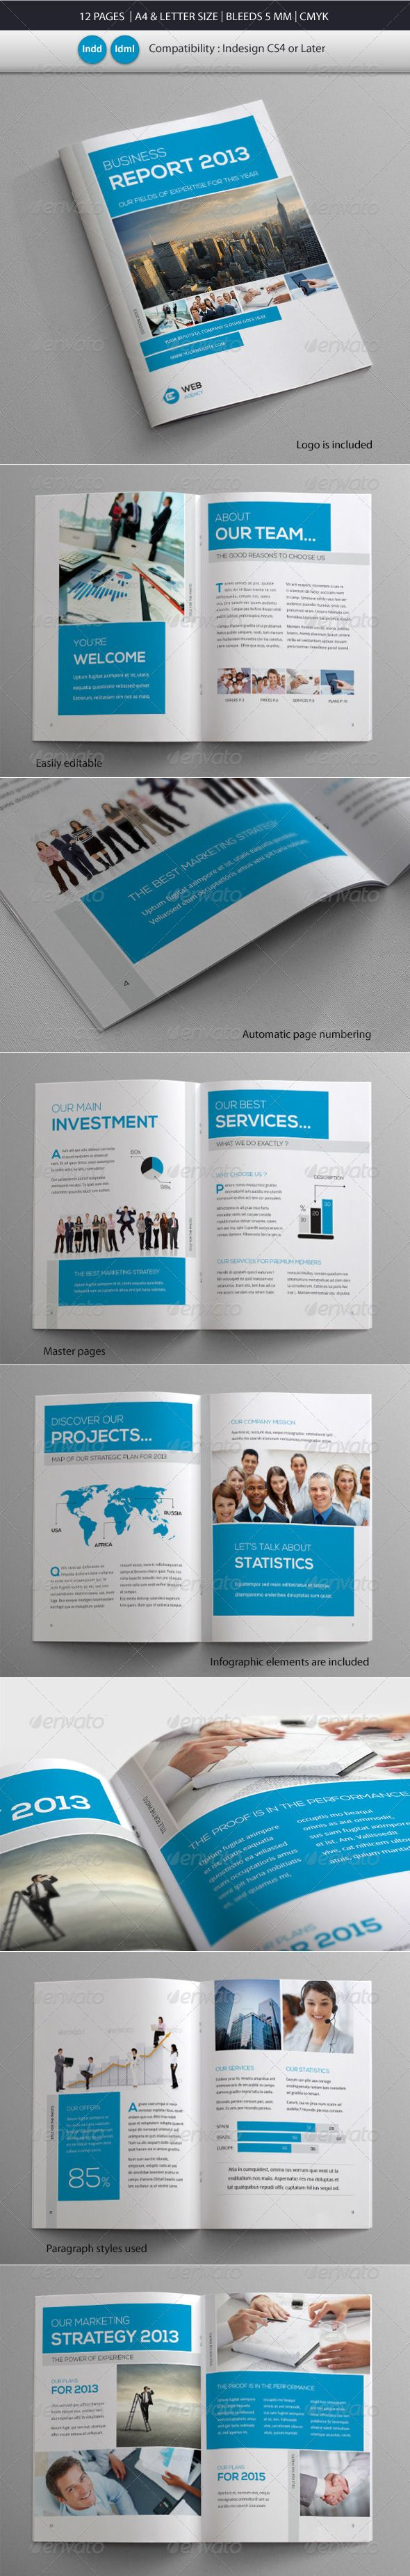 30 best business proposal design images on pinterest page layout coprorate business brochure report template flashek Images